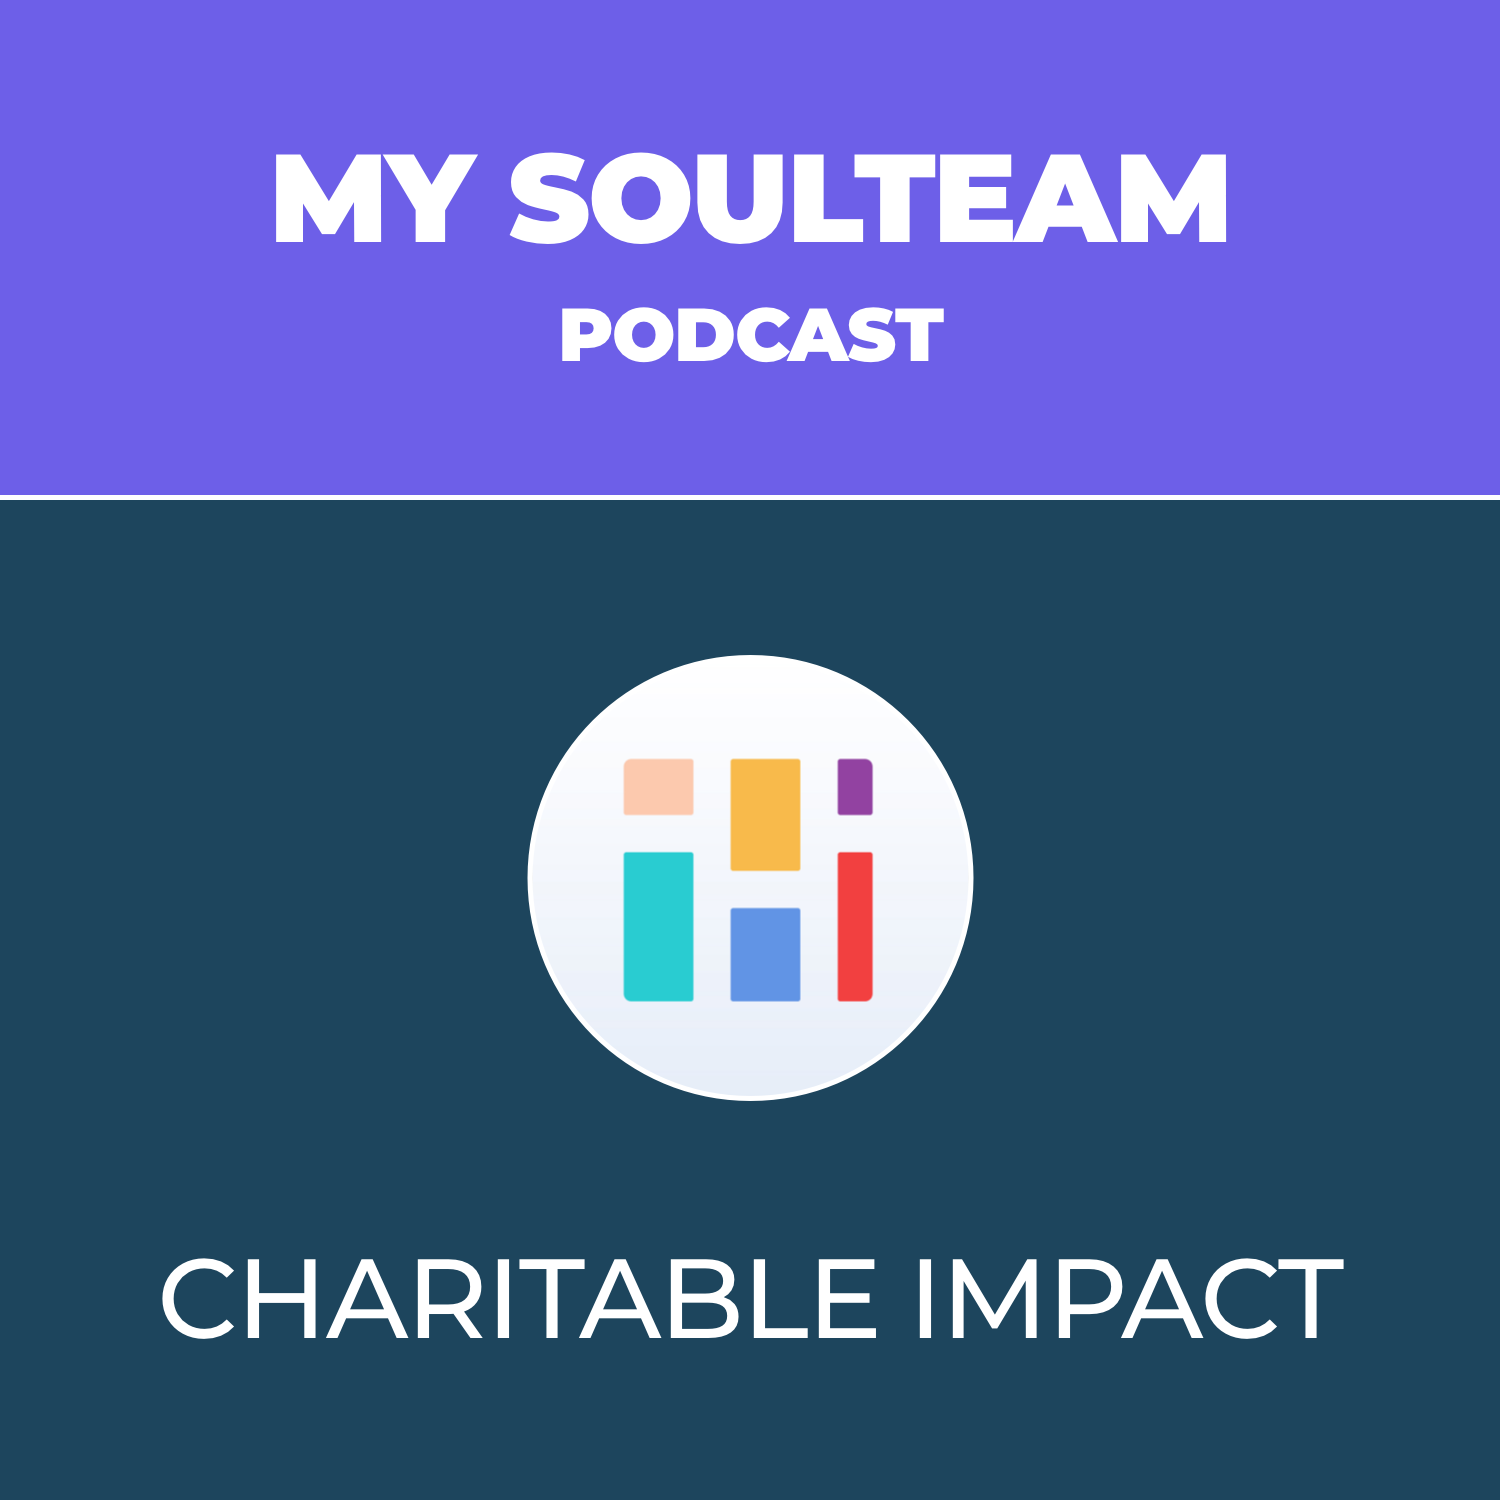 My SoulTeam Podcast - Episode 8 - Charitable Impact